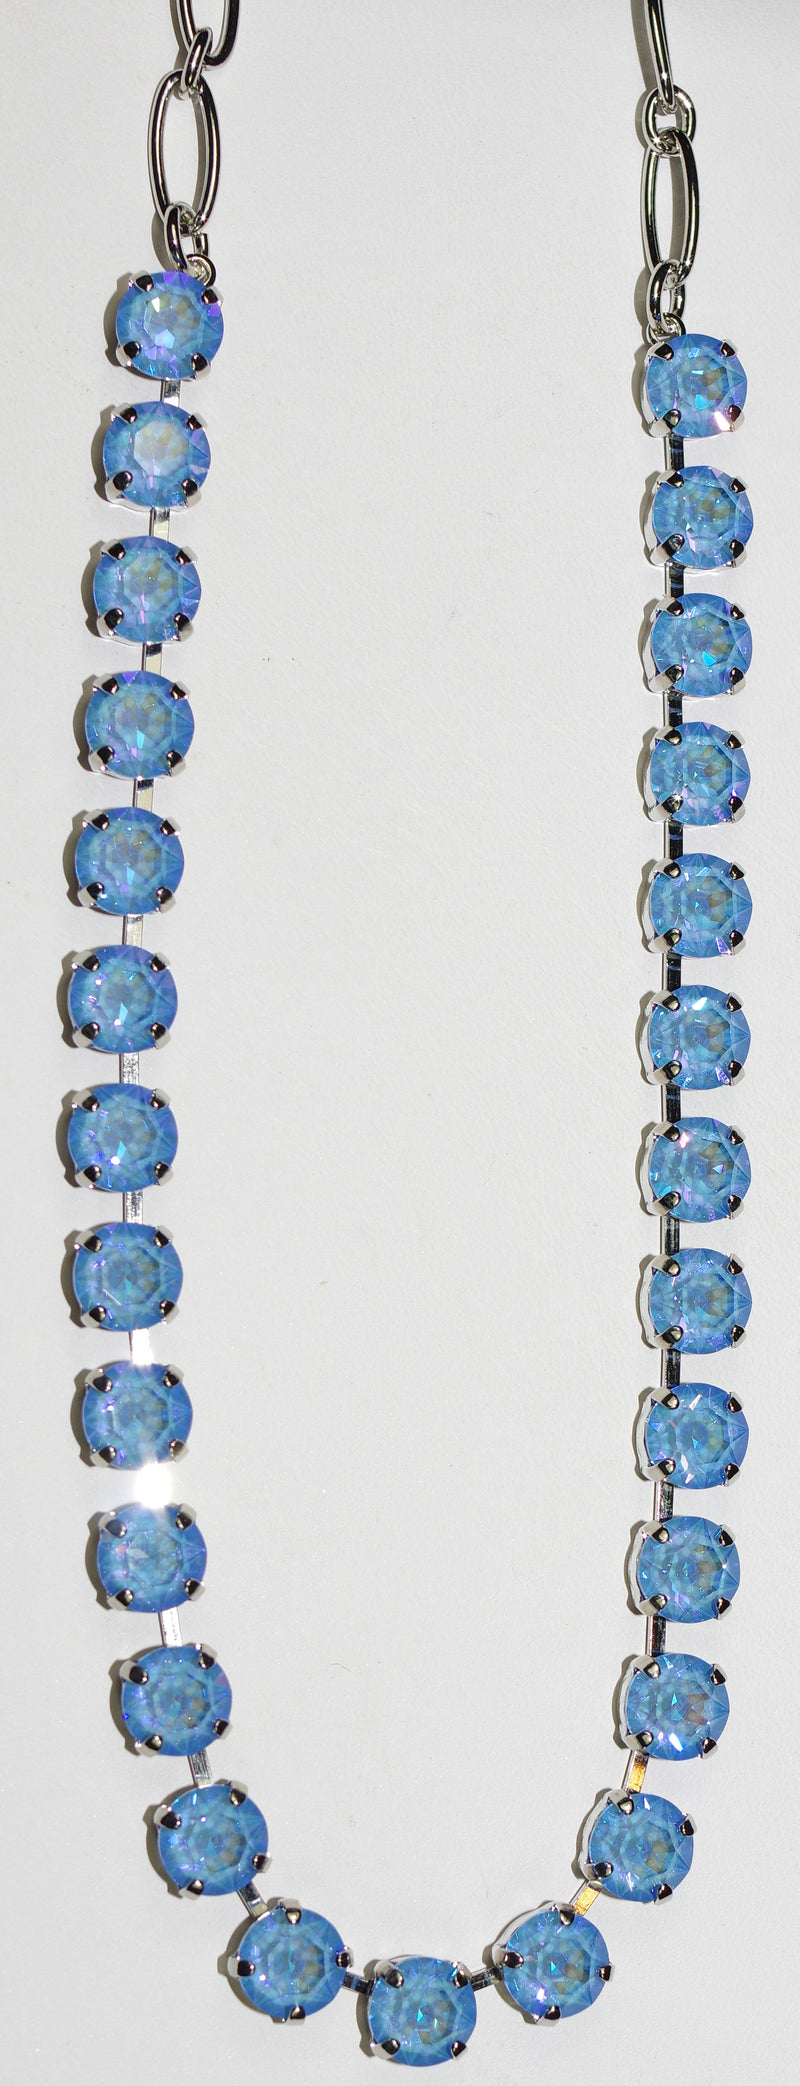 "MARIANA NECKLACE BETTE SUN KISSED BLUE: ultra blue 1/4"" stones in rhodium setting, 17"" adjustable chain"